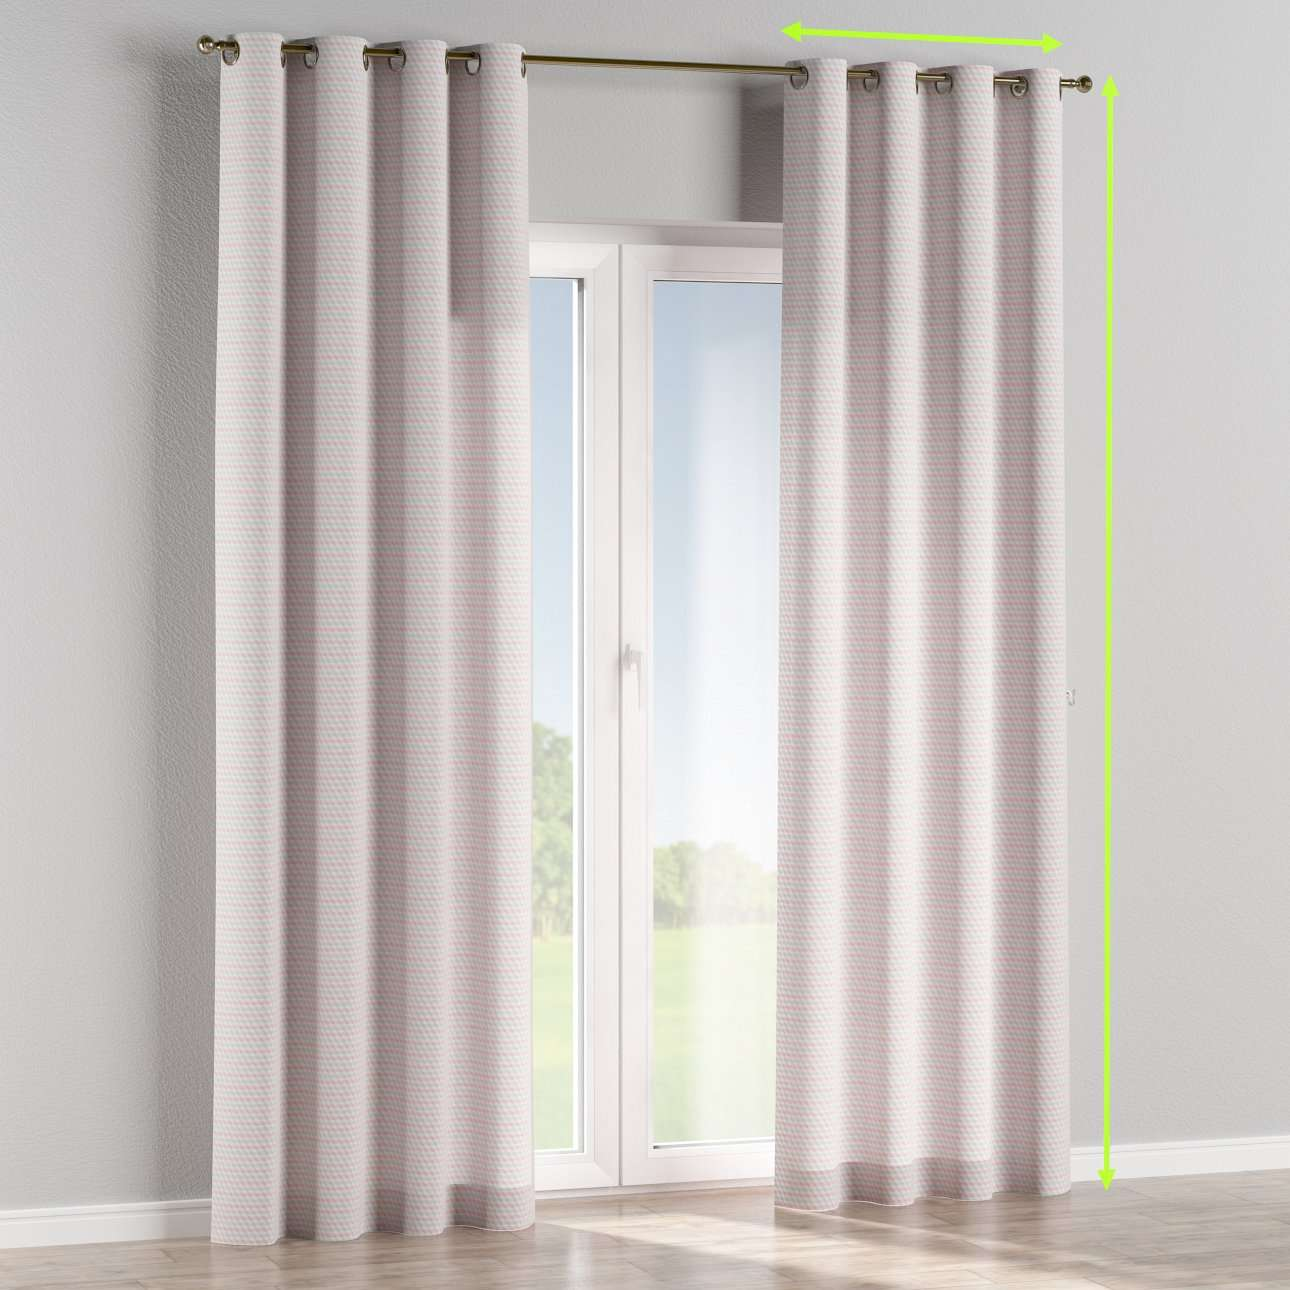 Eyelet curtains in collection Rustica, fabric: 140-30